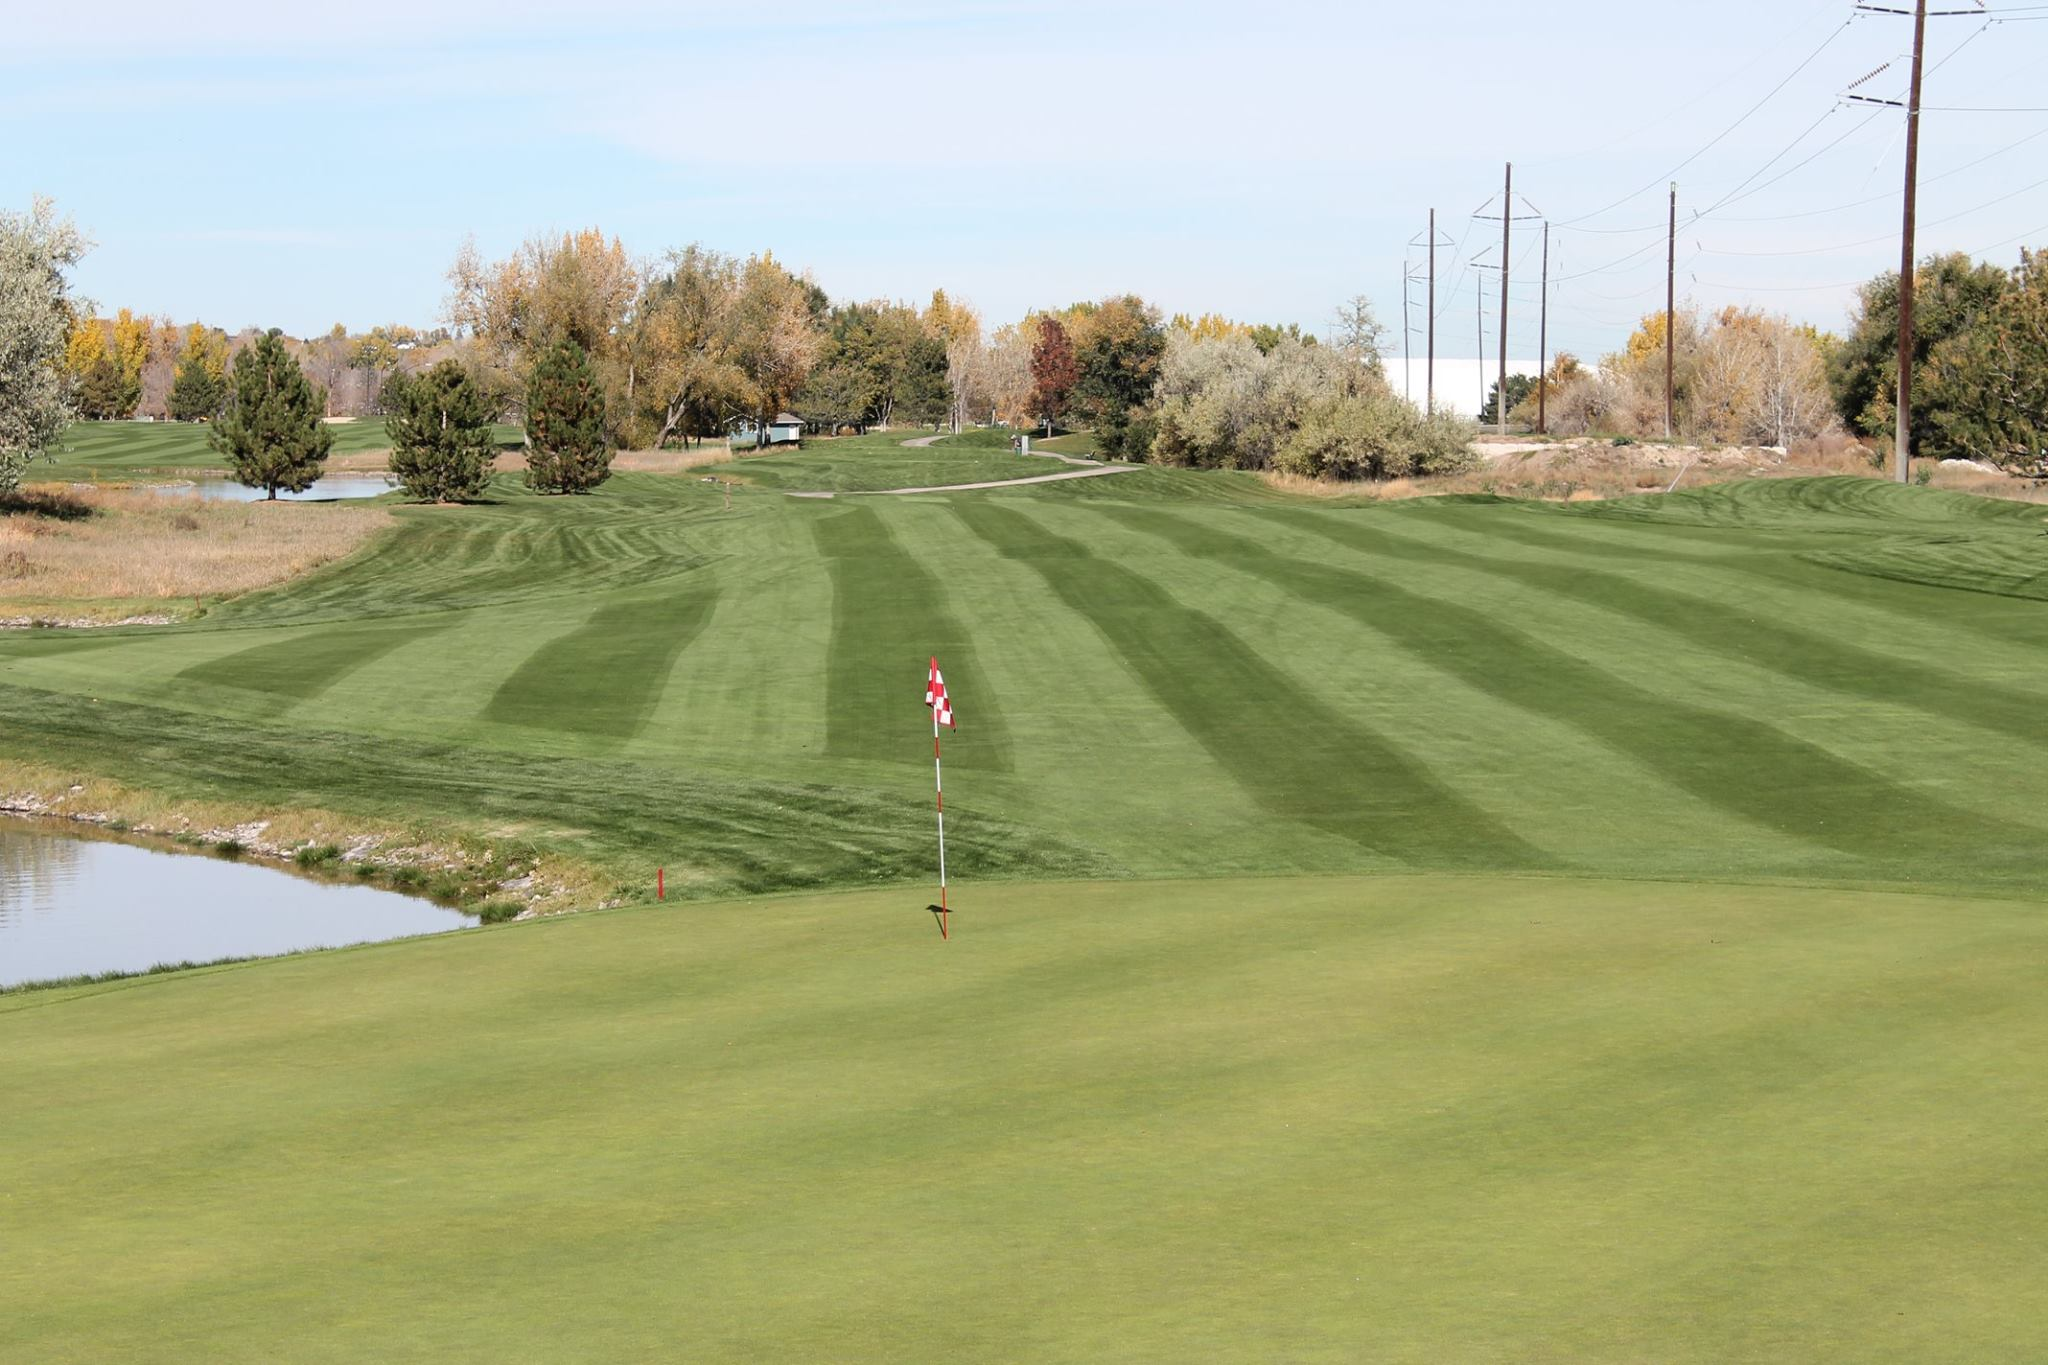 Overview of golf course named South Suburban Golf Course